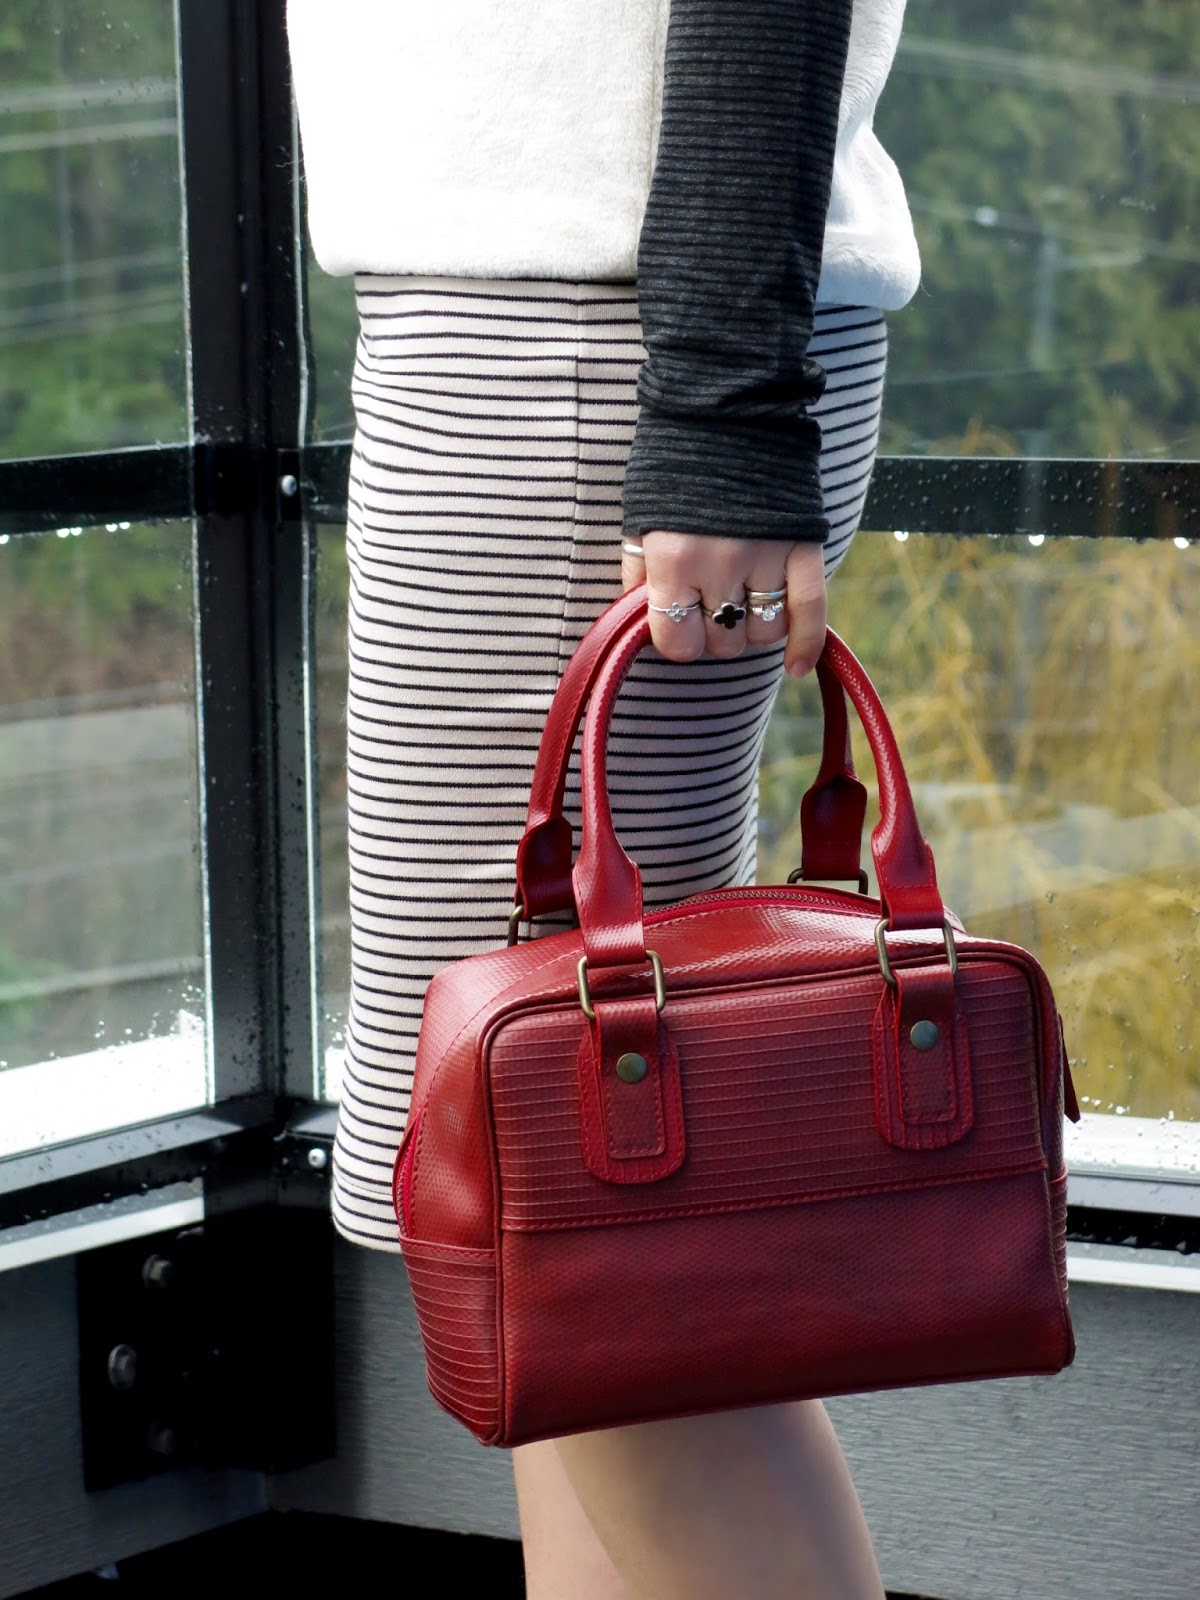 turtleneck, plush tee, striped pencil skirt, and Elvis & Kresse box bag